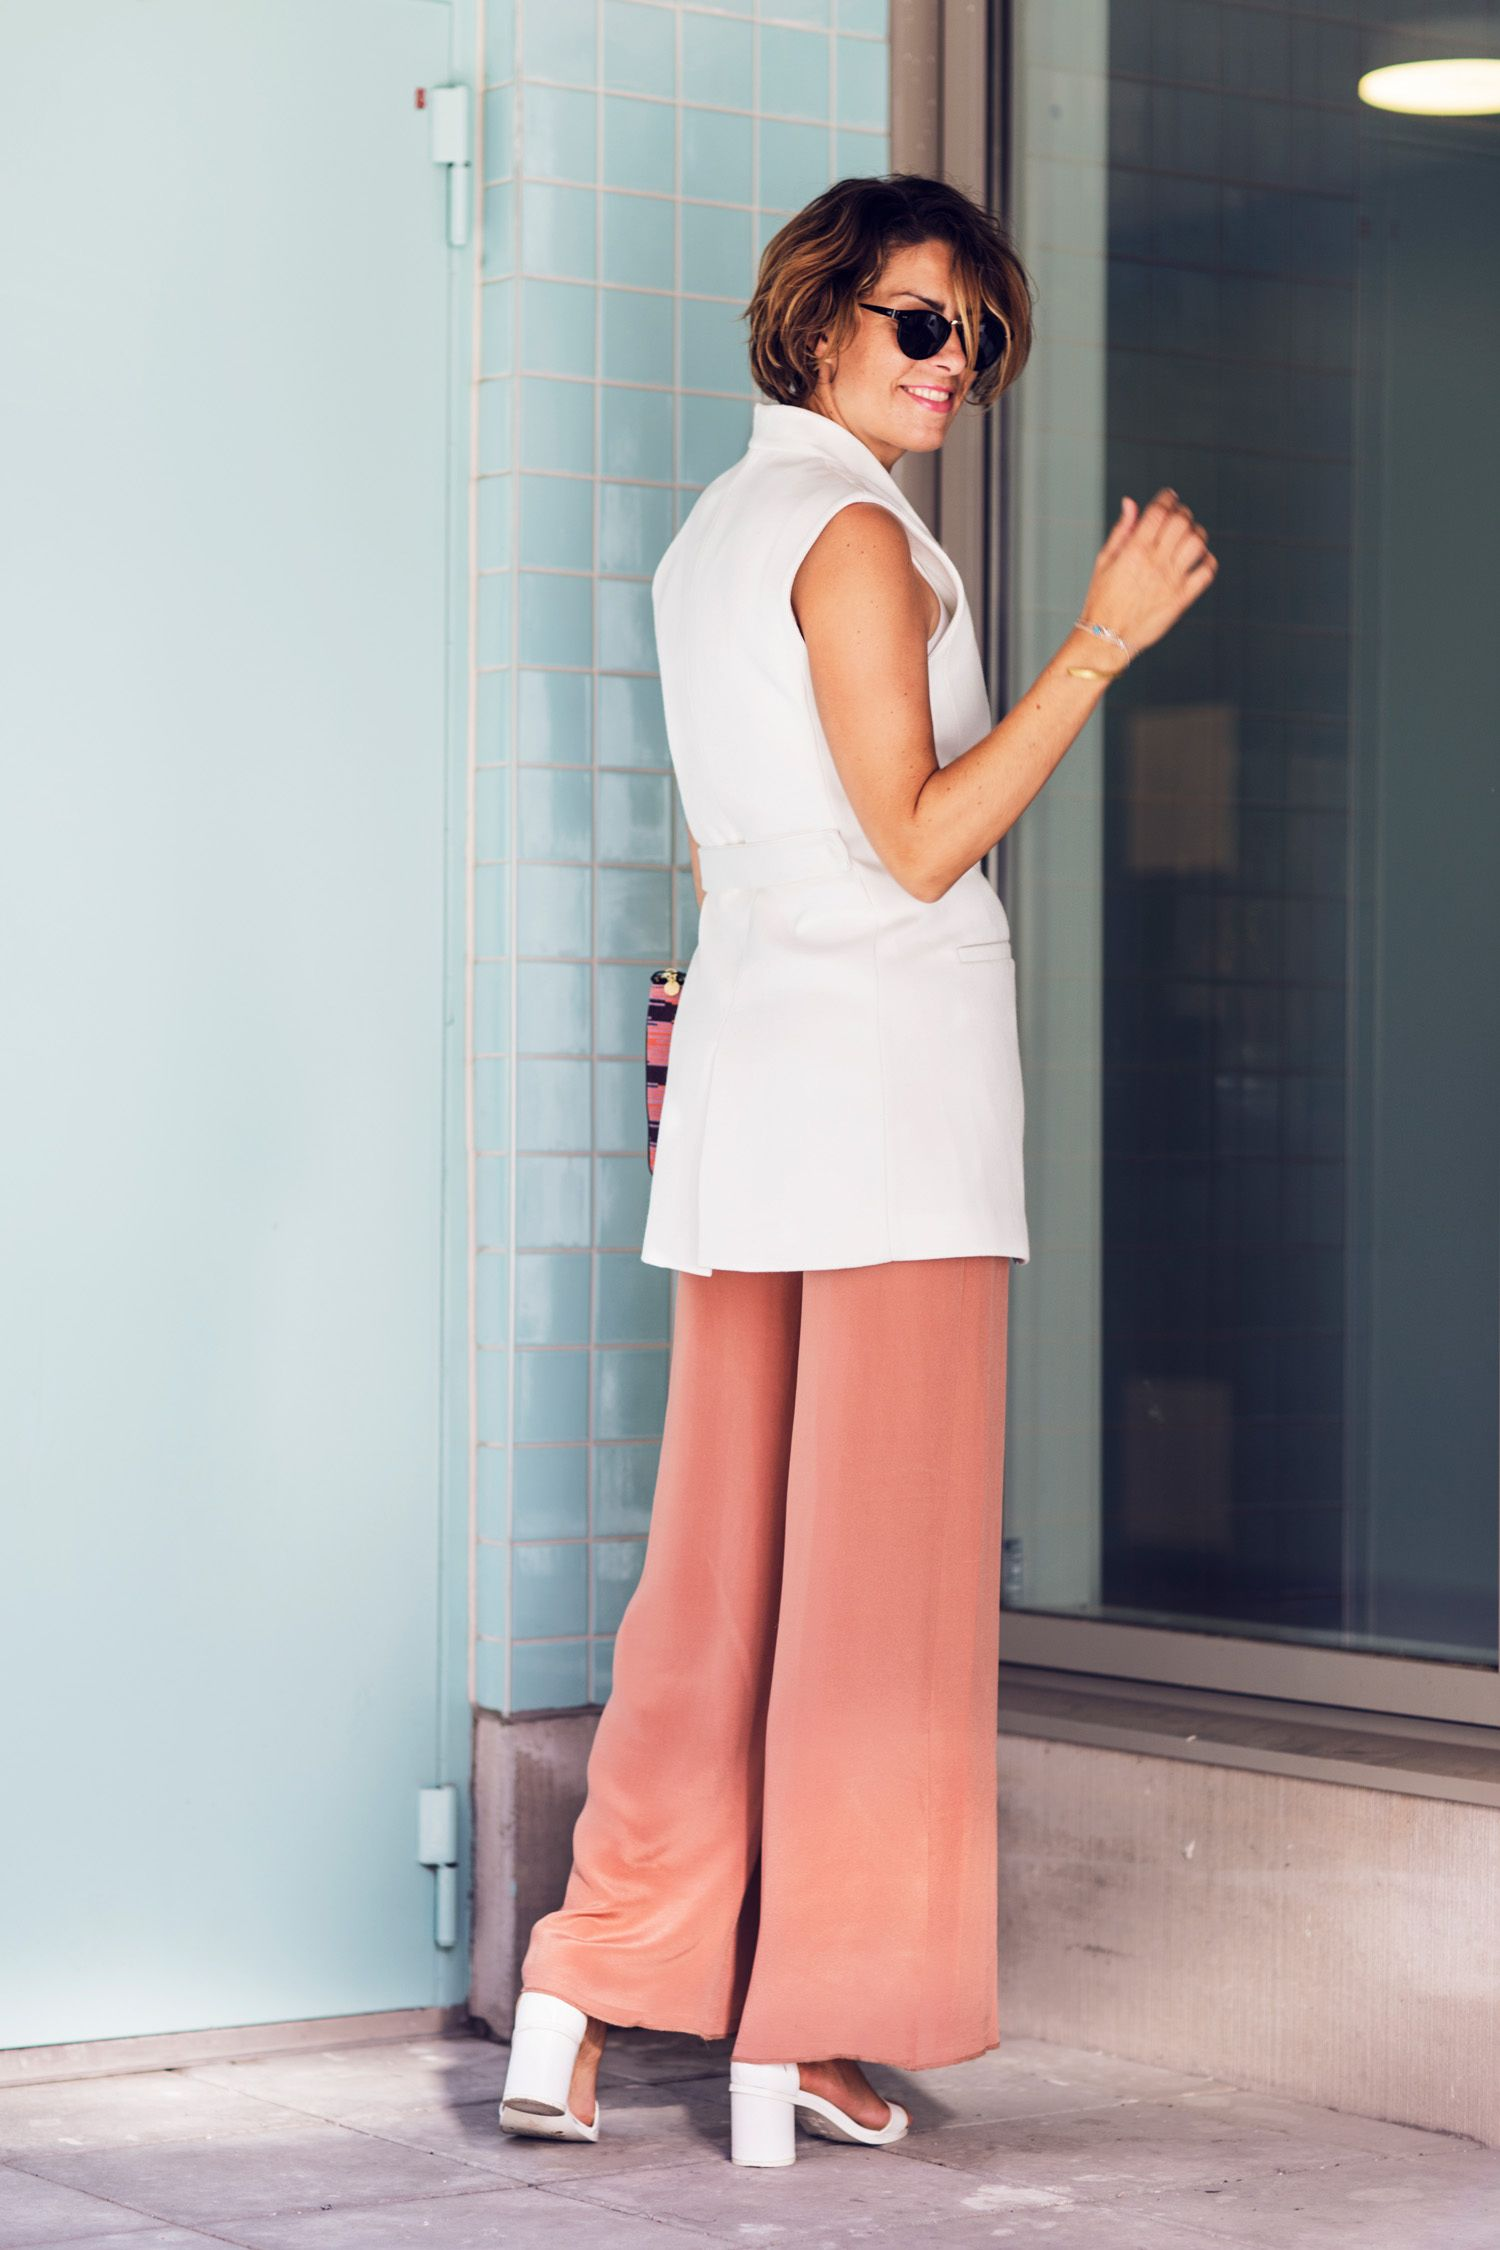 Nina Campioni at ELLE Sweden shows of her OOTD, or look of